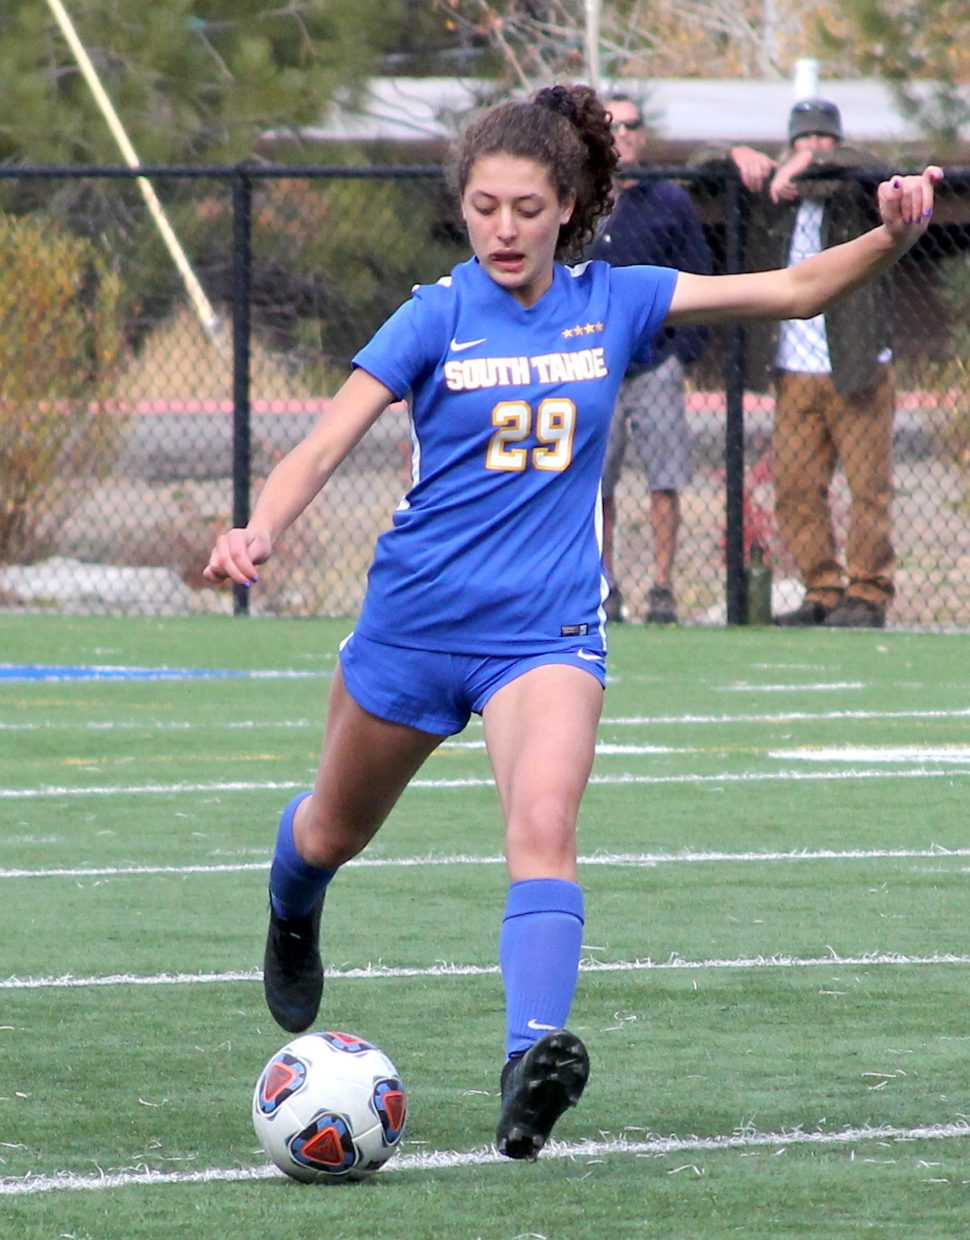 South Tahoe's Jenna Revenge hits a free kick.